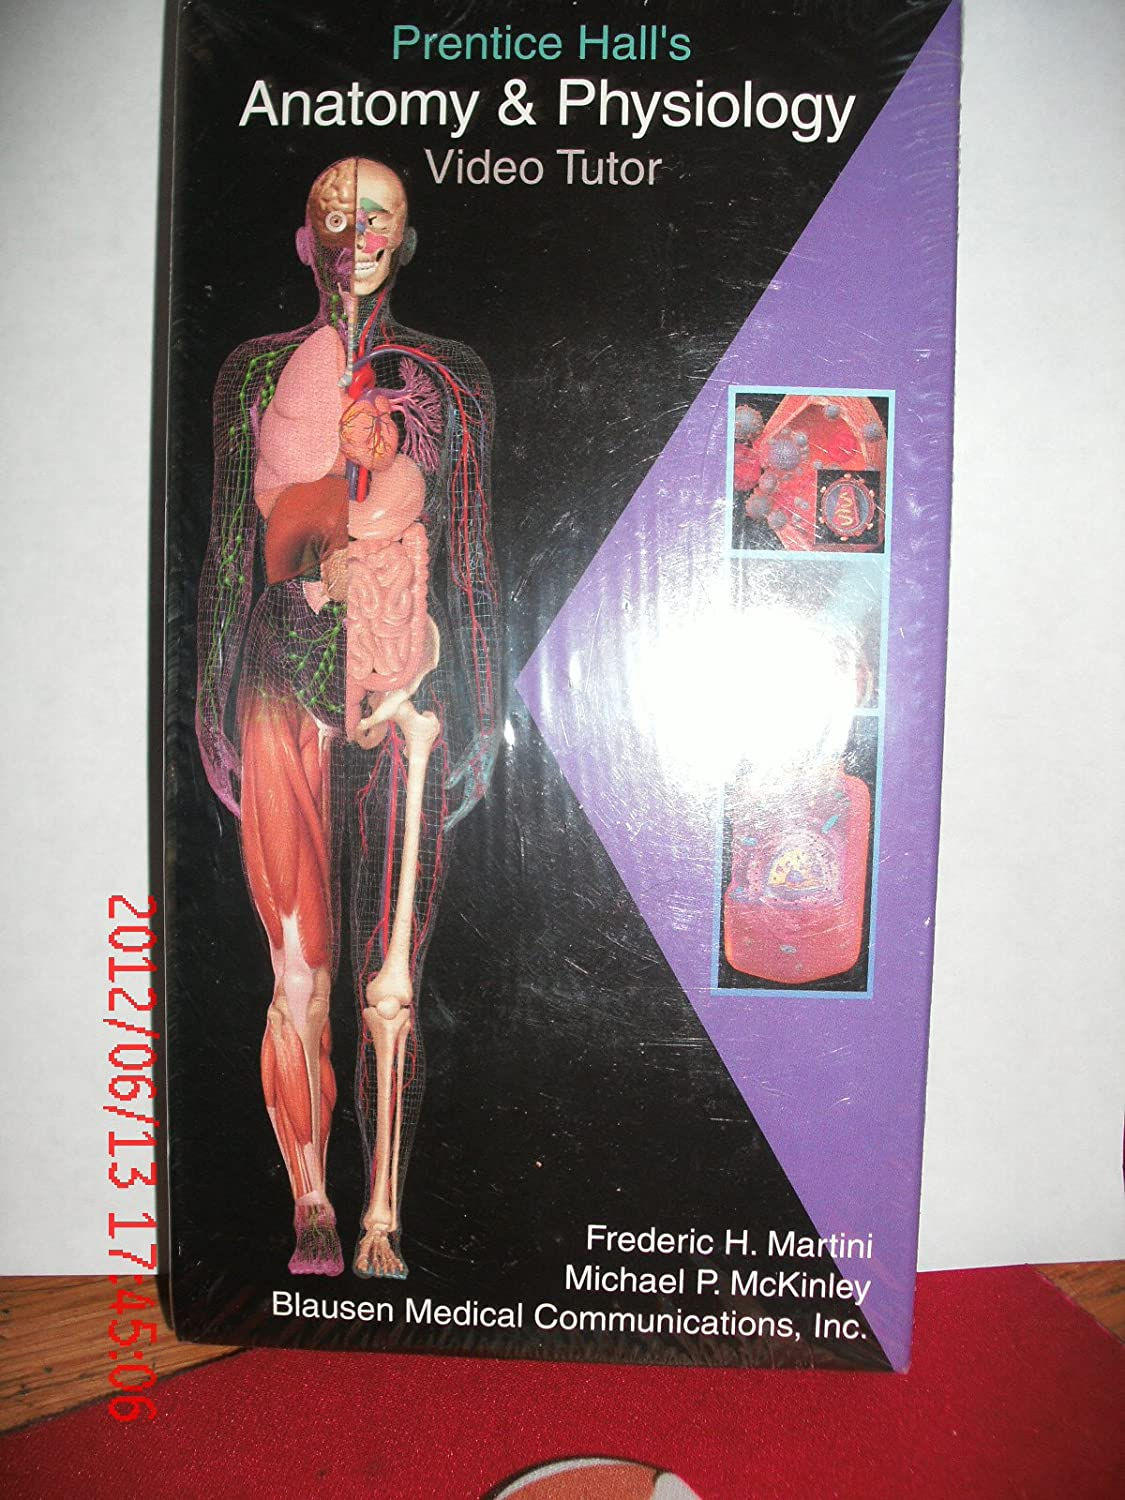 Amazon.com: Fundamentals of Anatomy and Physiology [VHS]: Frederic ...